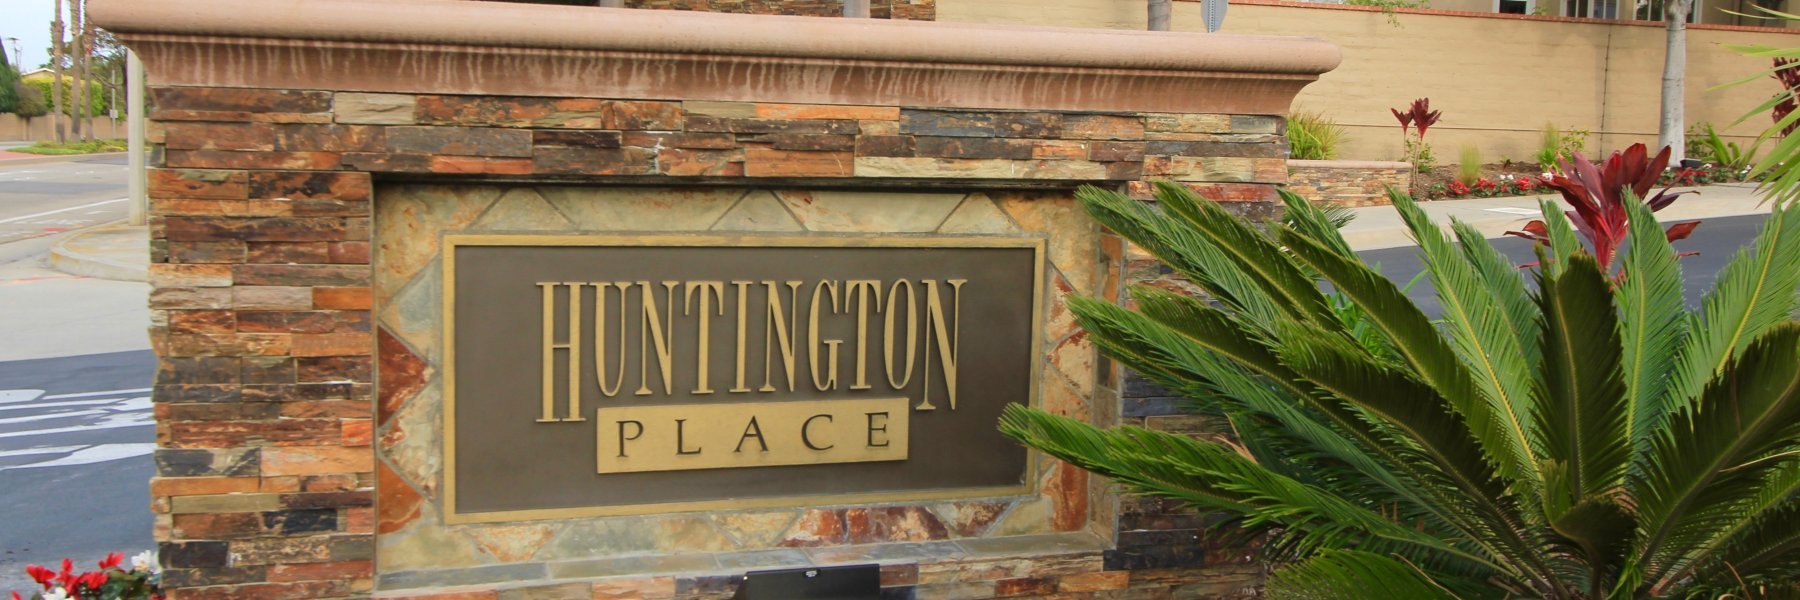 Huntington Place is a community of homes in Huntington Beach California